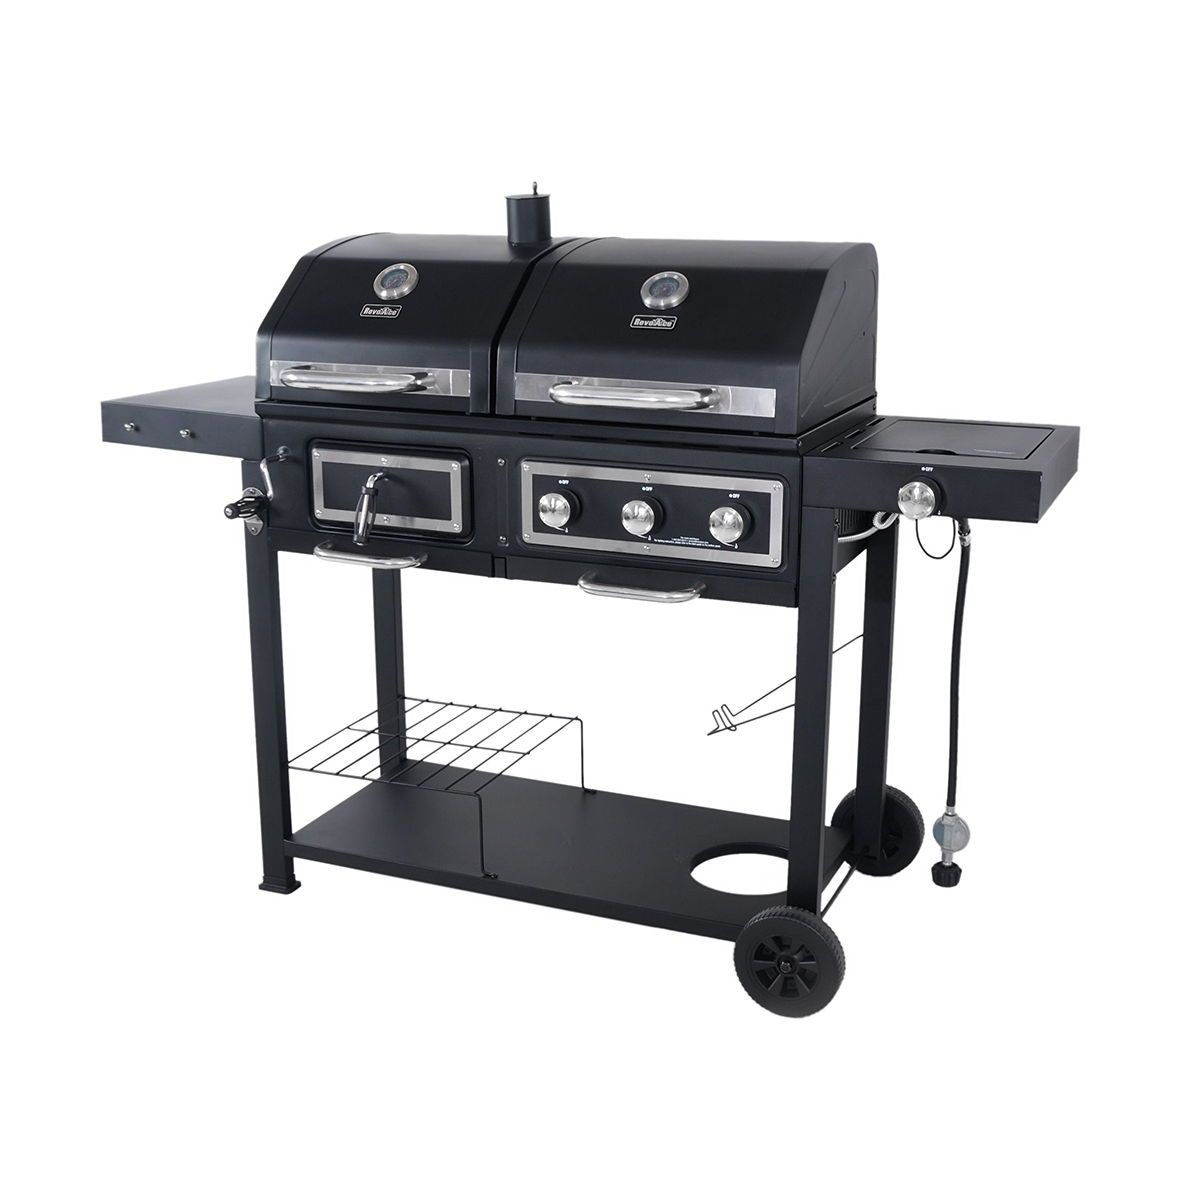 9 best grills for 2019 according to reviews dual fuel